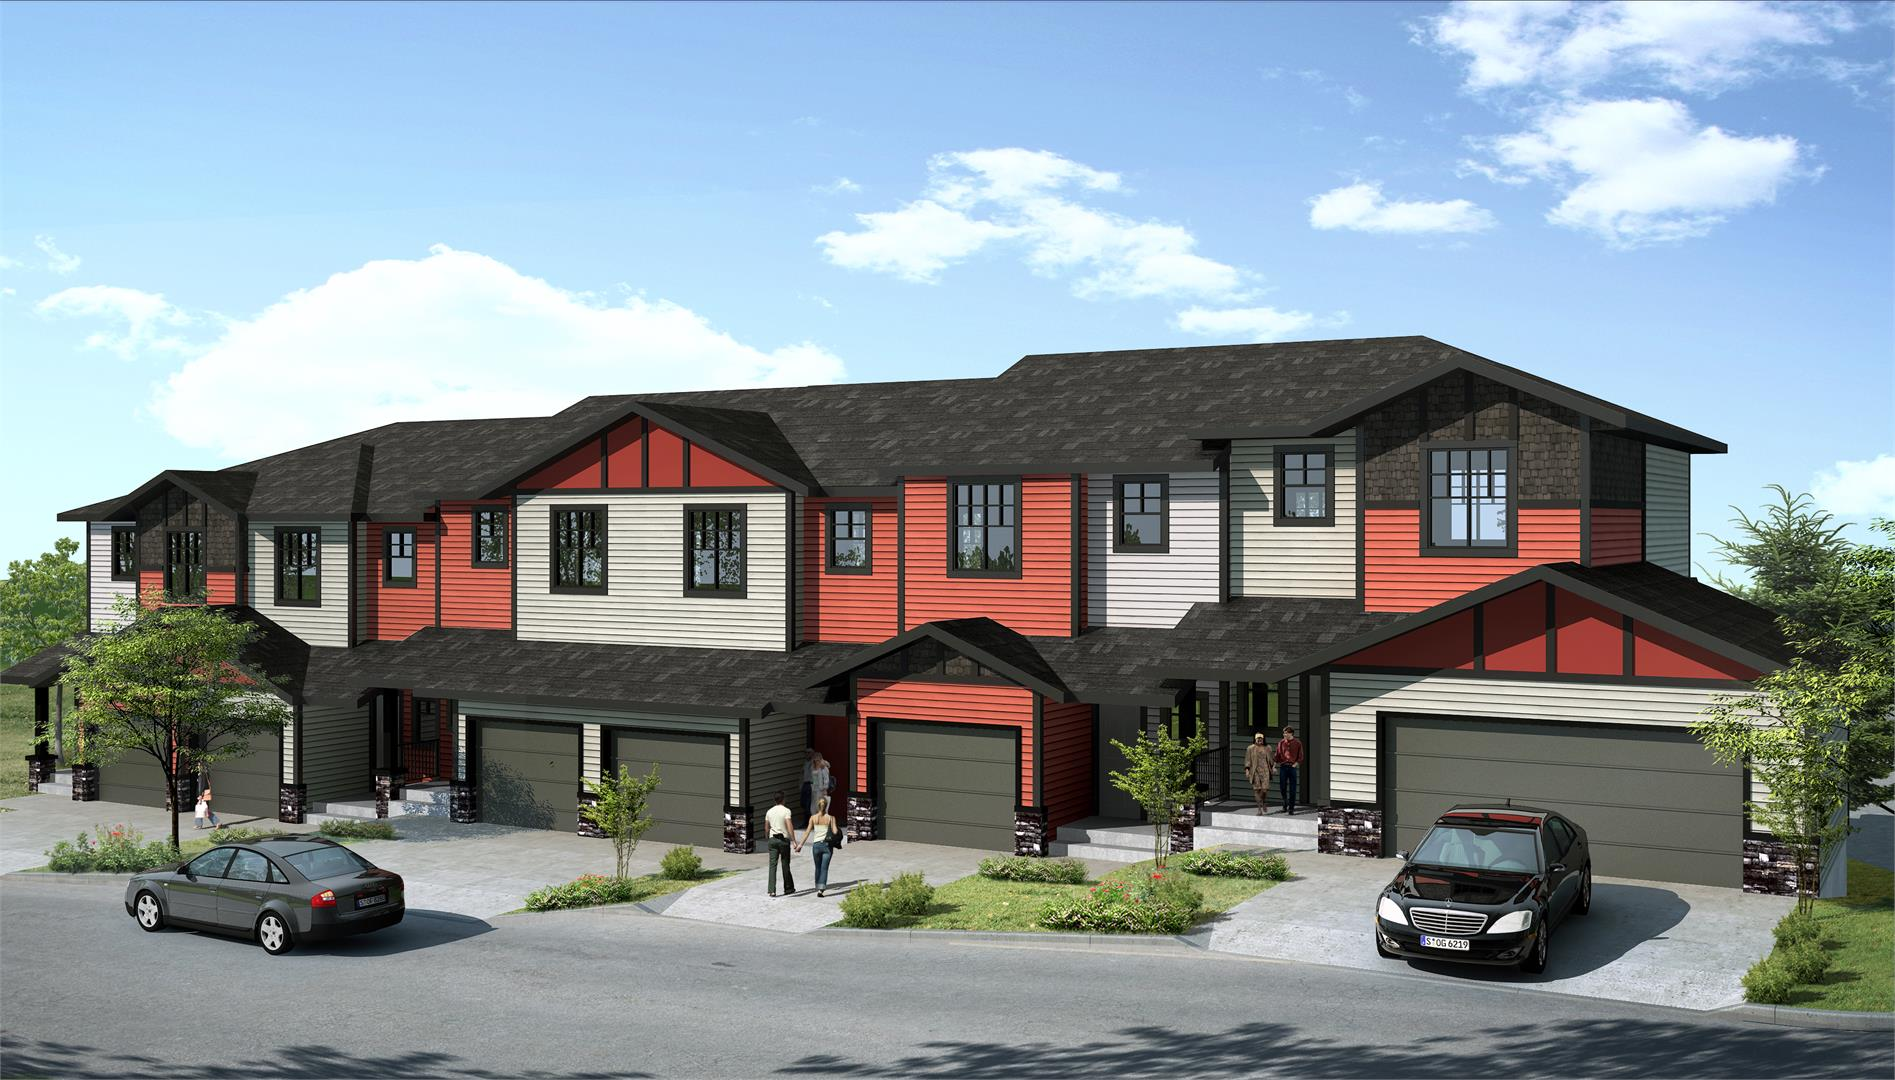 Jumping pound ridge townhomes plans prices availability for Townhouse construction cost